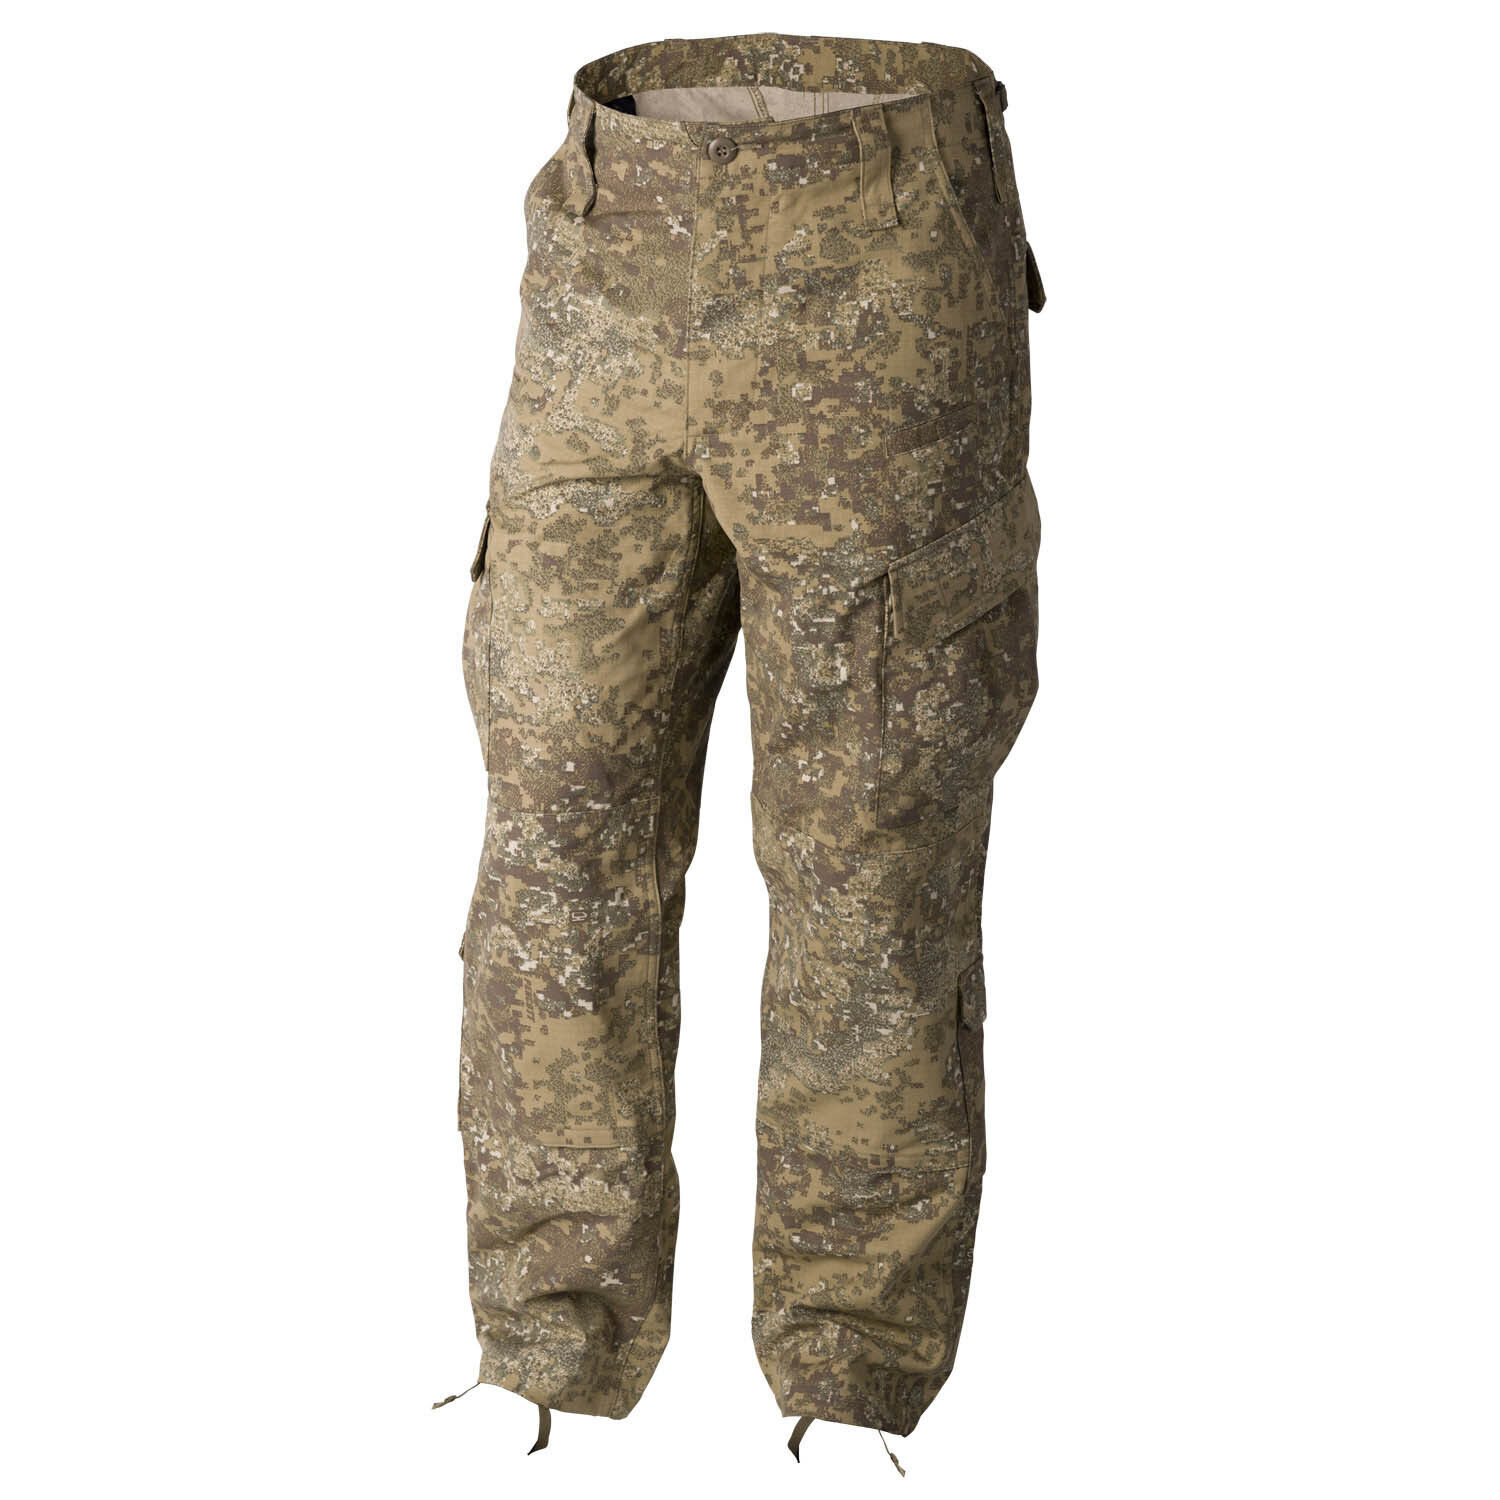 Helikon Tex Tactical Combat C P U PENCOTT BADLANDS NYCO pants Hose Large Regular